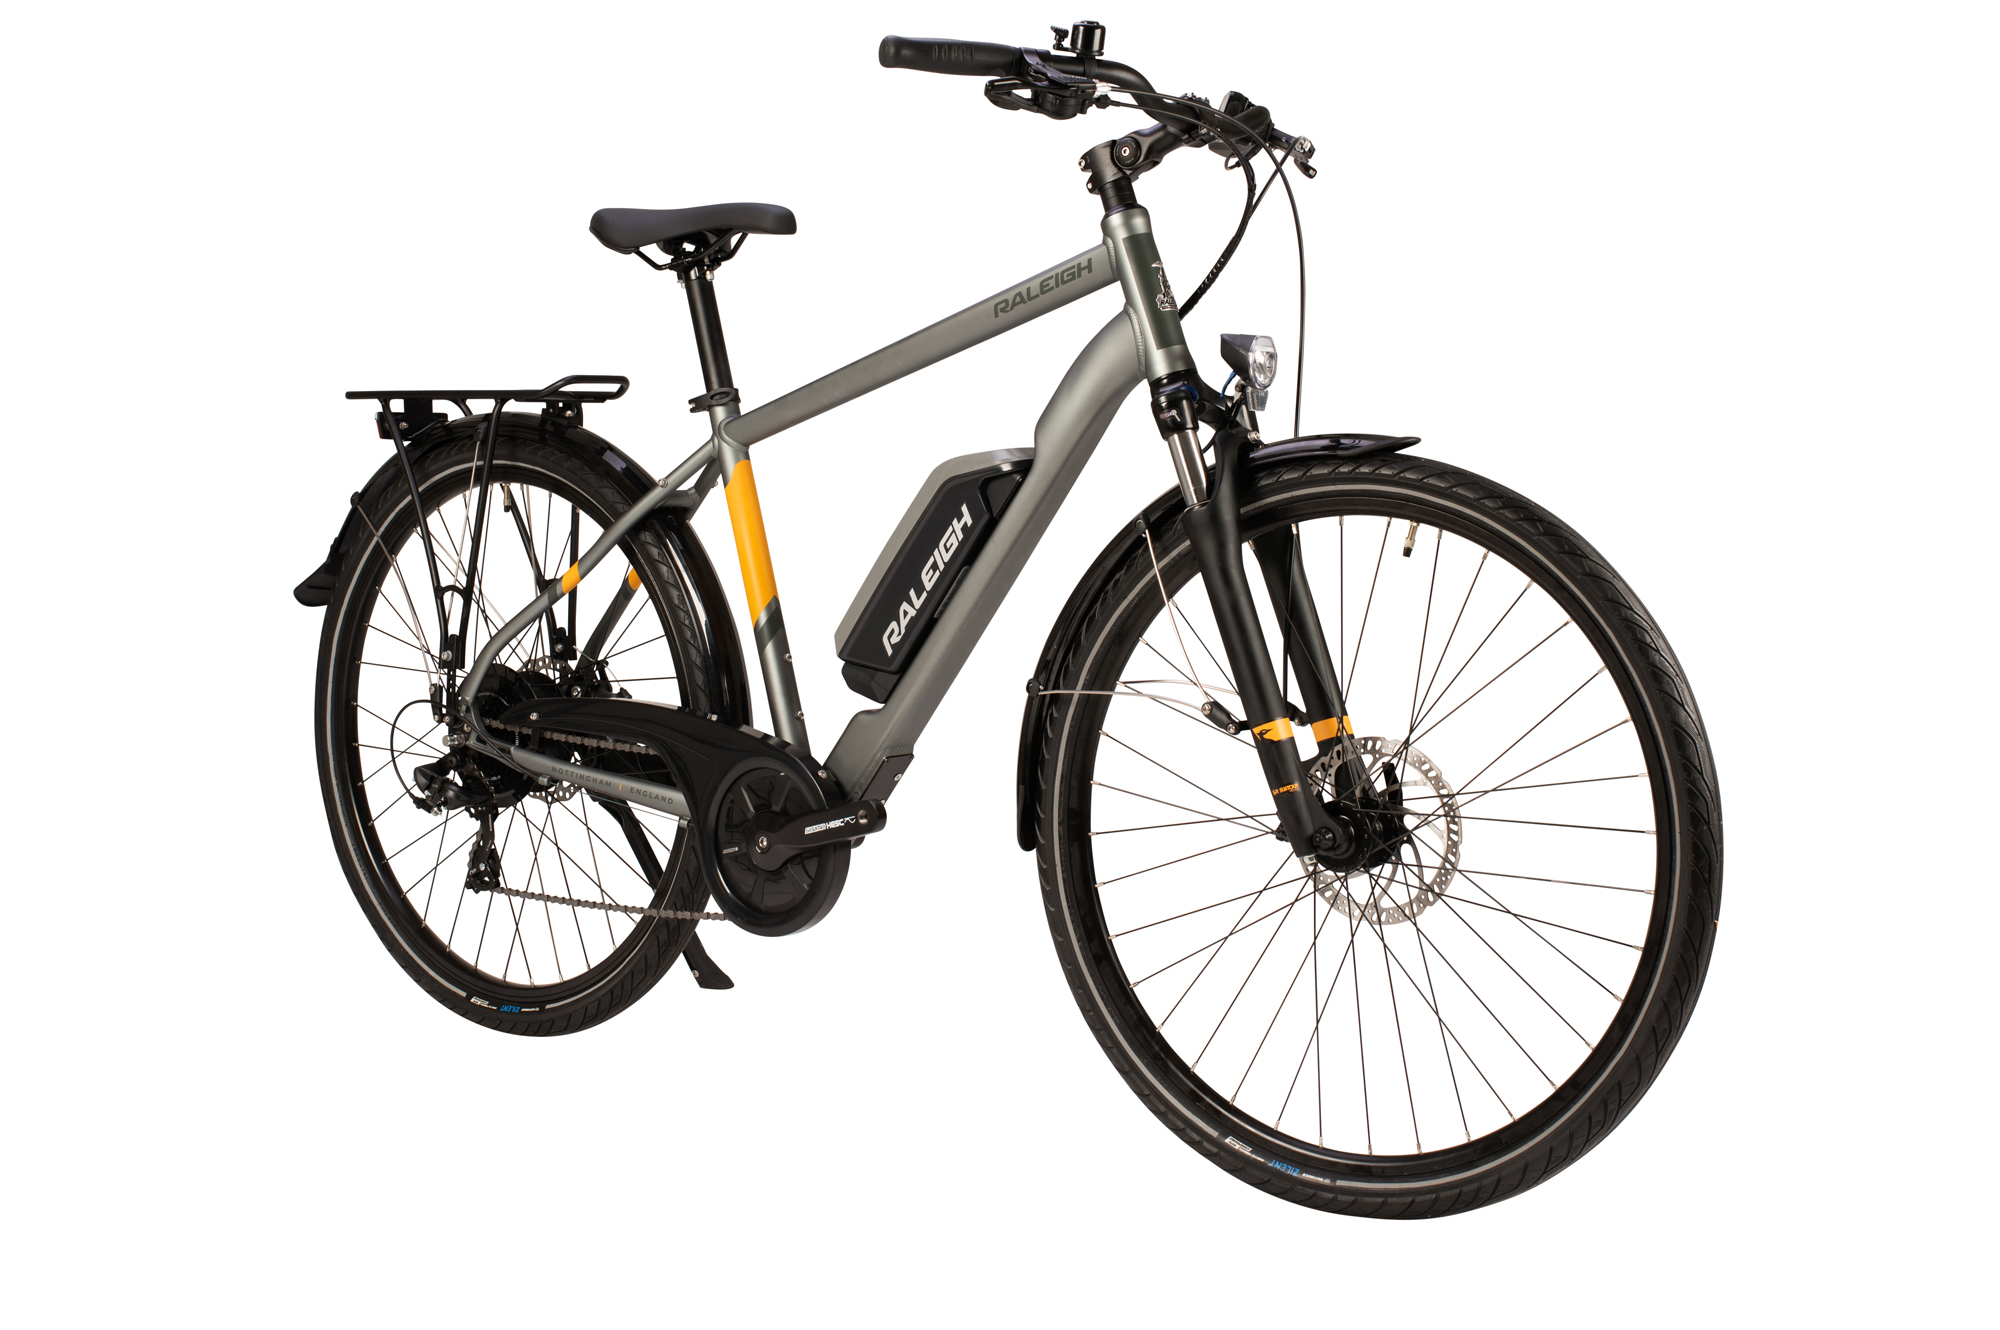 Front view of the Raleigh Array electric bike